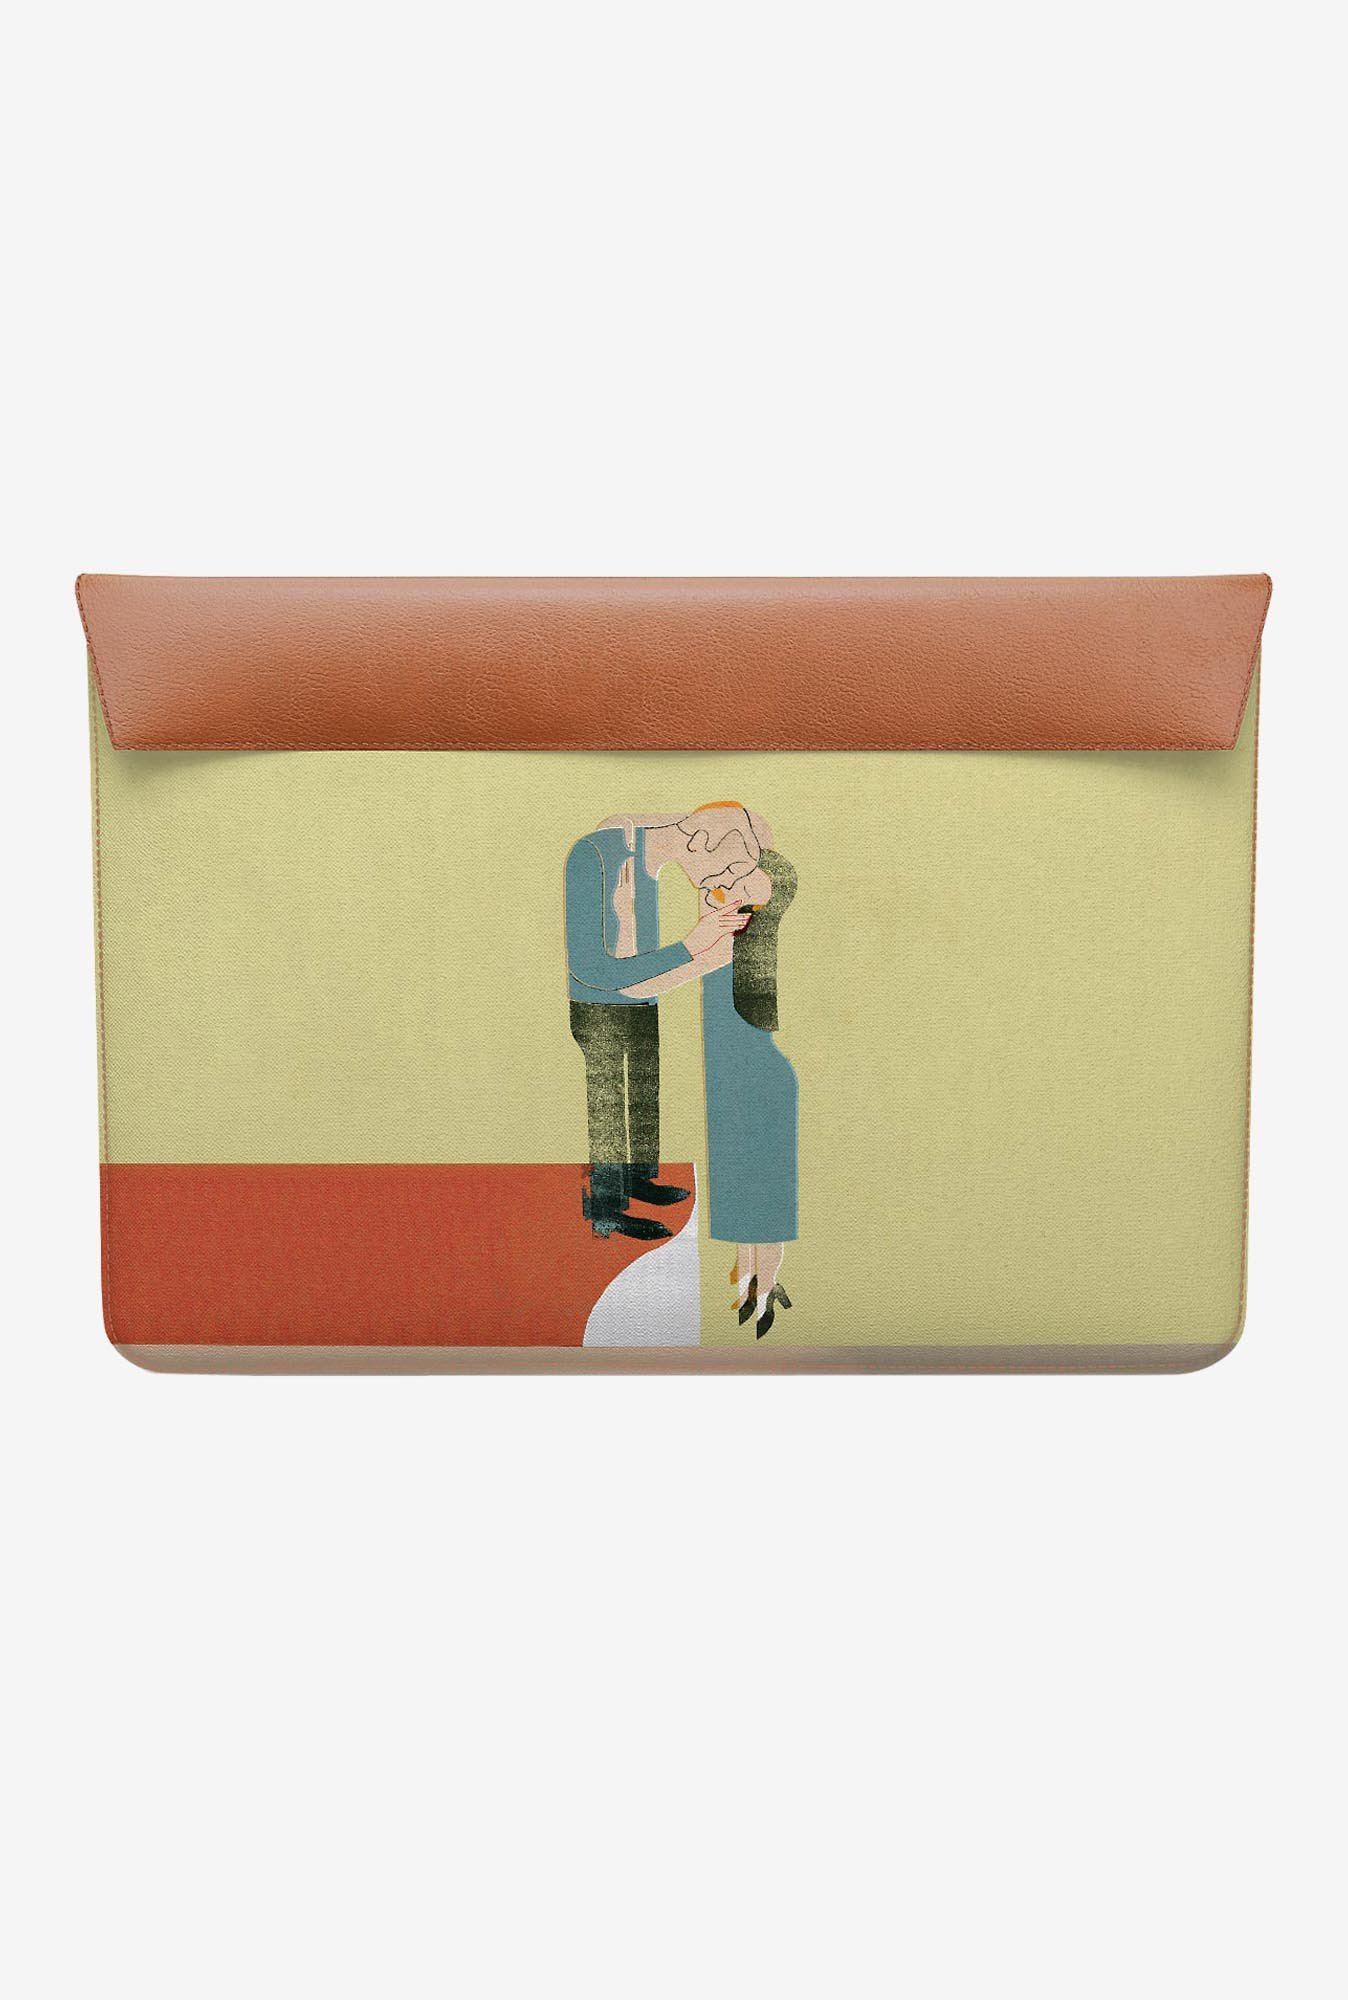 DailyObjects Warm Embrace MacBook 12 Envelope Sleeve